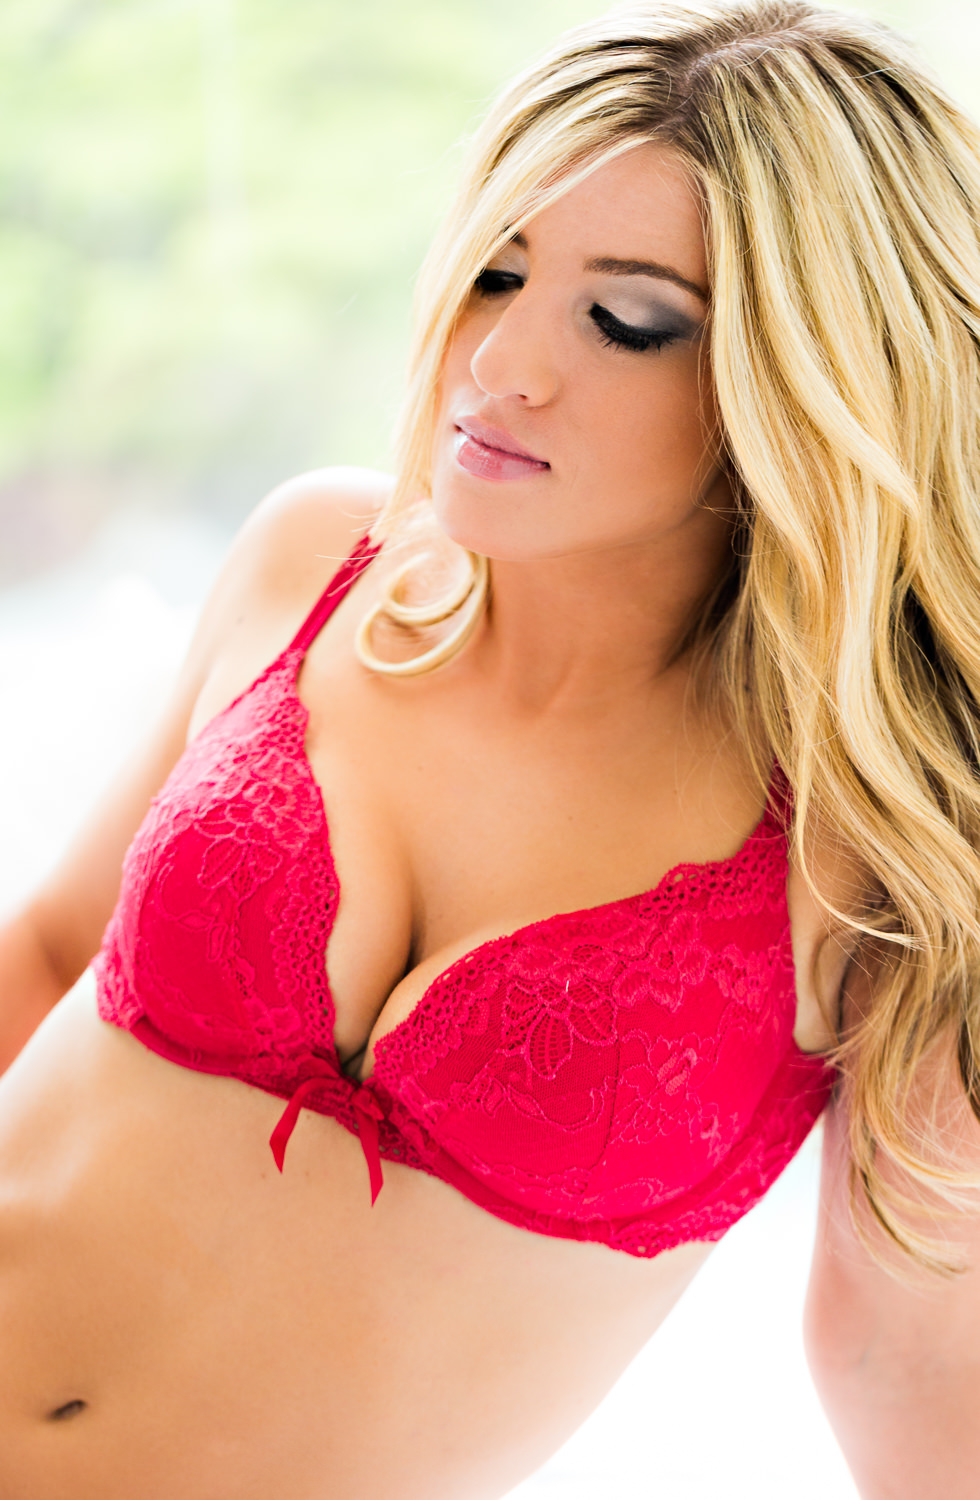 montana-boudoir-photography-female-red-bra.jpg